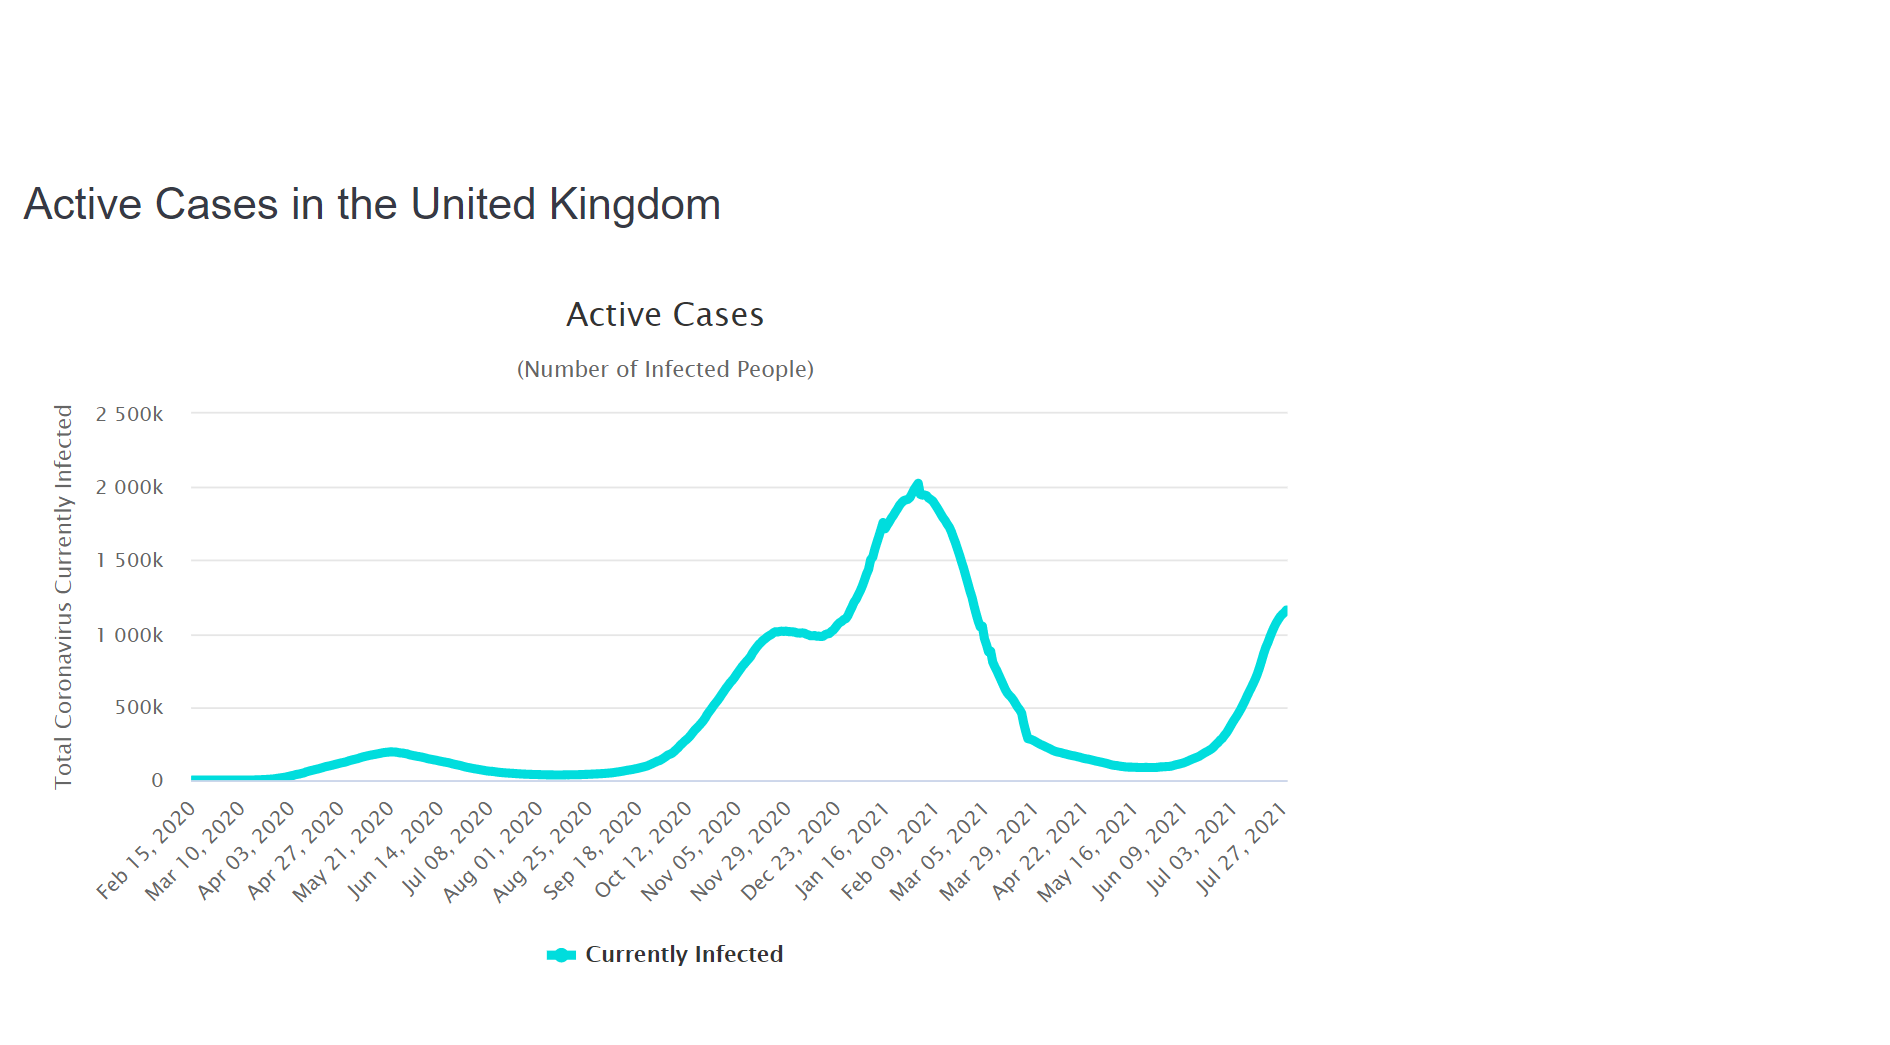 a chart showing the active COVID cases in the UK. The graph raises at the end